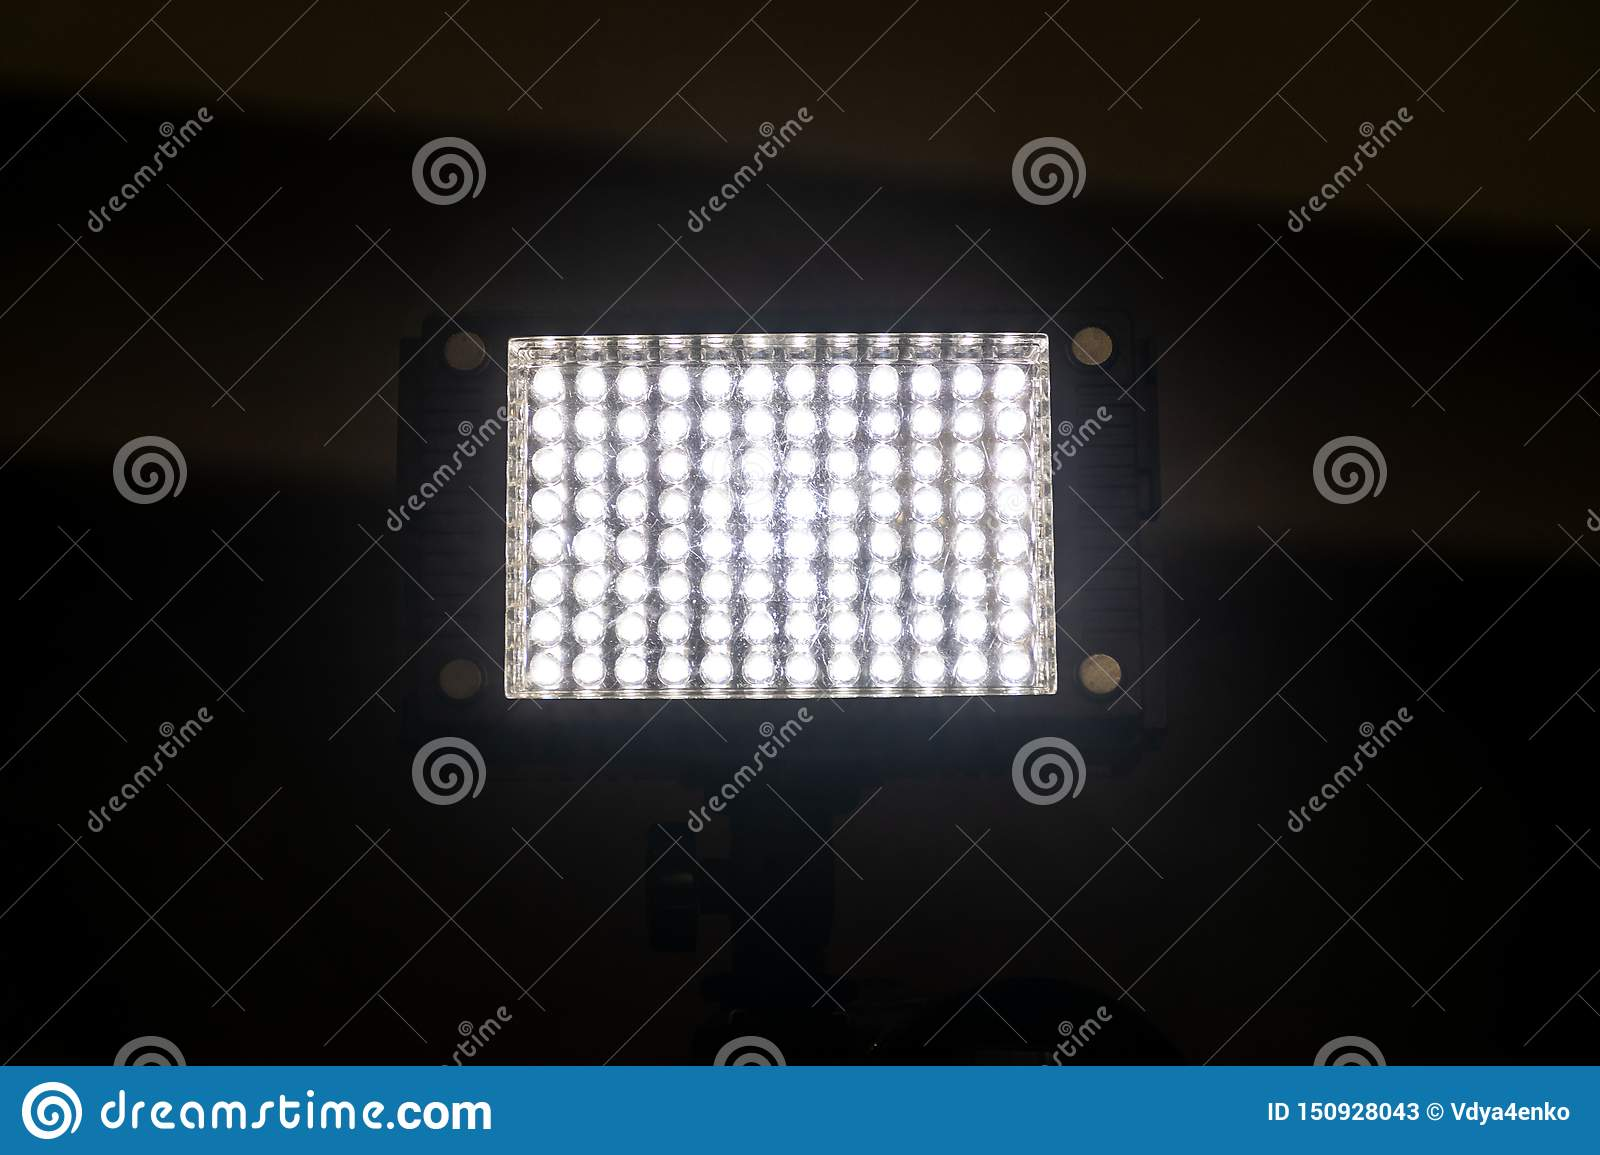 Bright powerful light of a rectangular lantern with LEDs